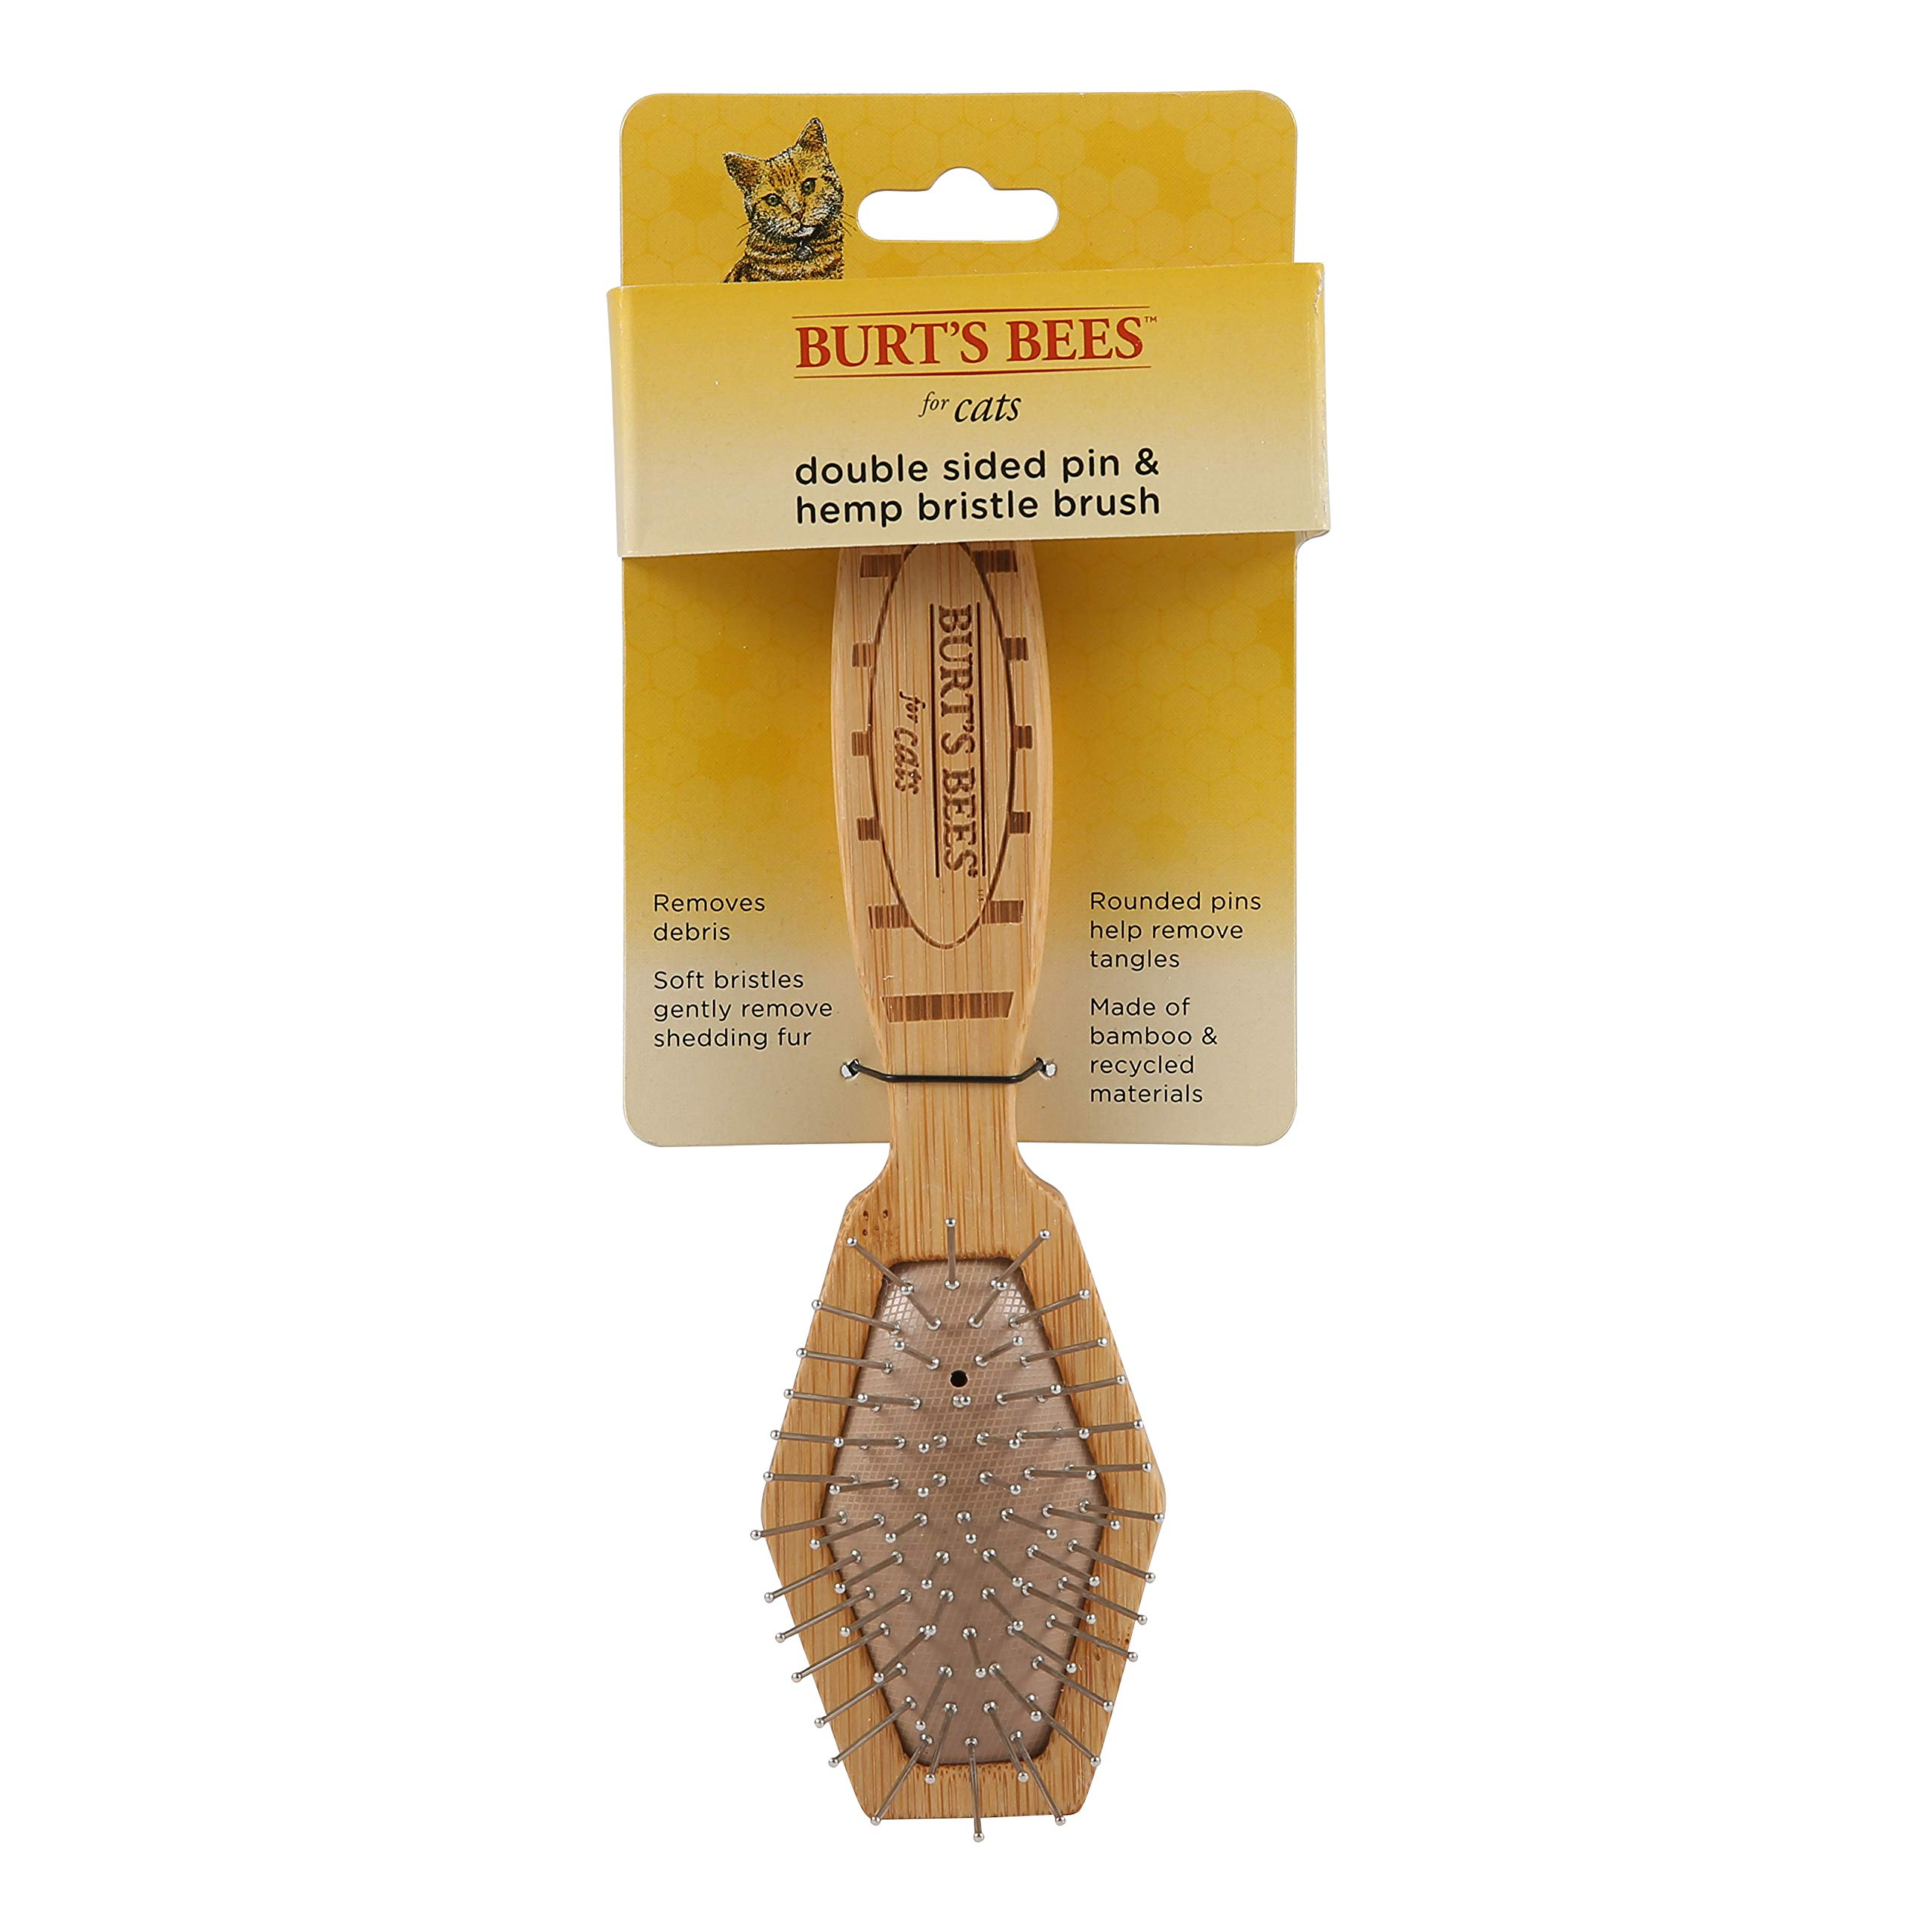 Burt's Bees for Cats 2-in-1 Double Sided Pin & Bristle Brush for Cats | One Side of Cat Brush Removes Loose Fur and Prevents Matting | Cat Brush is Ideal for Daily Grooming